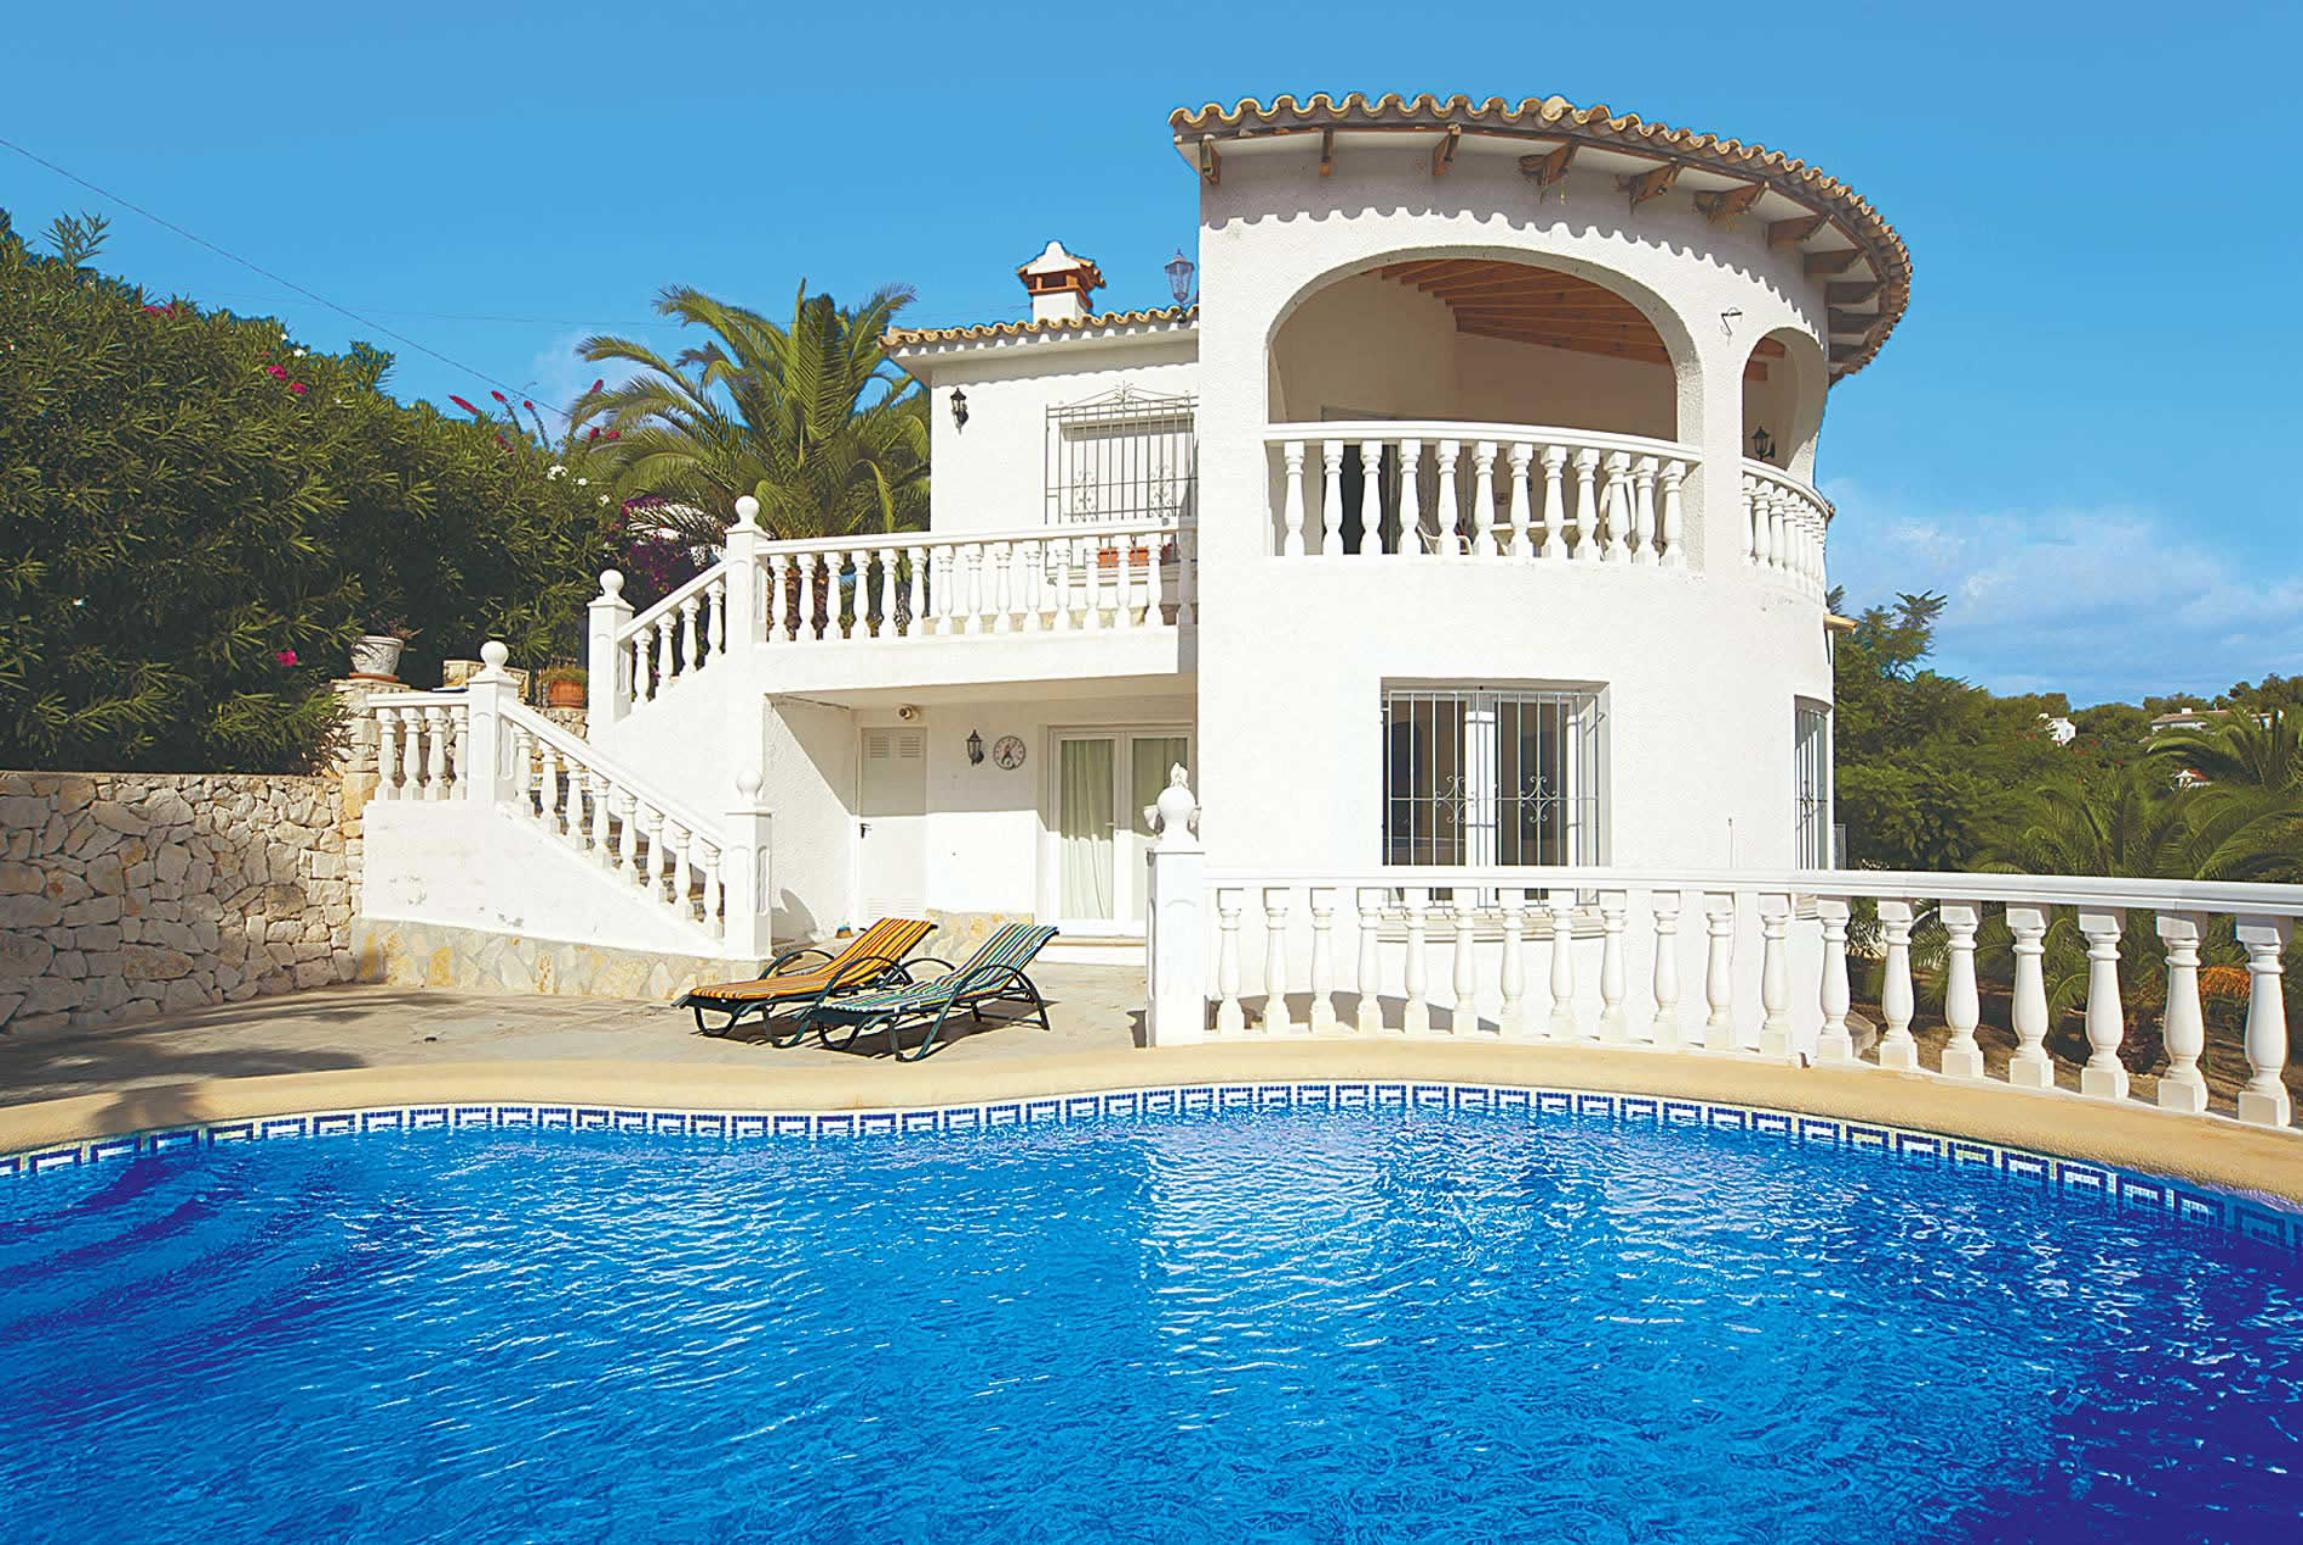 Read more about Las Ampolas villa